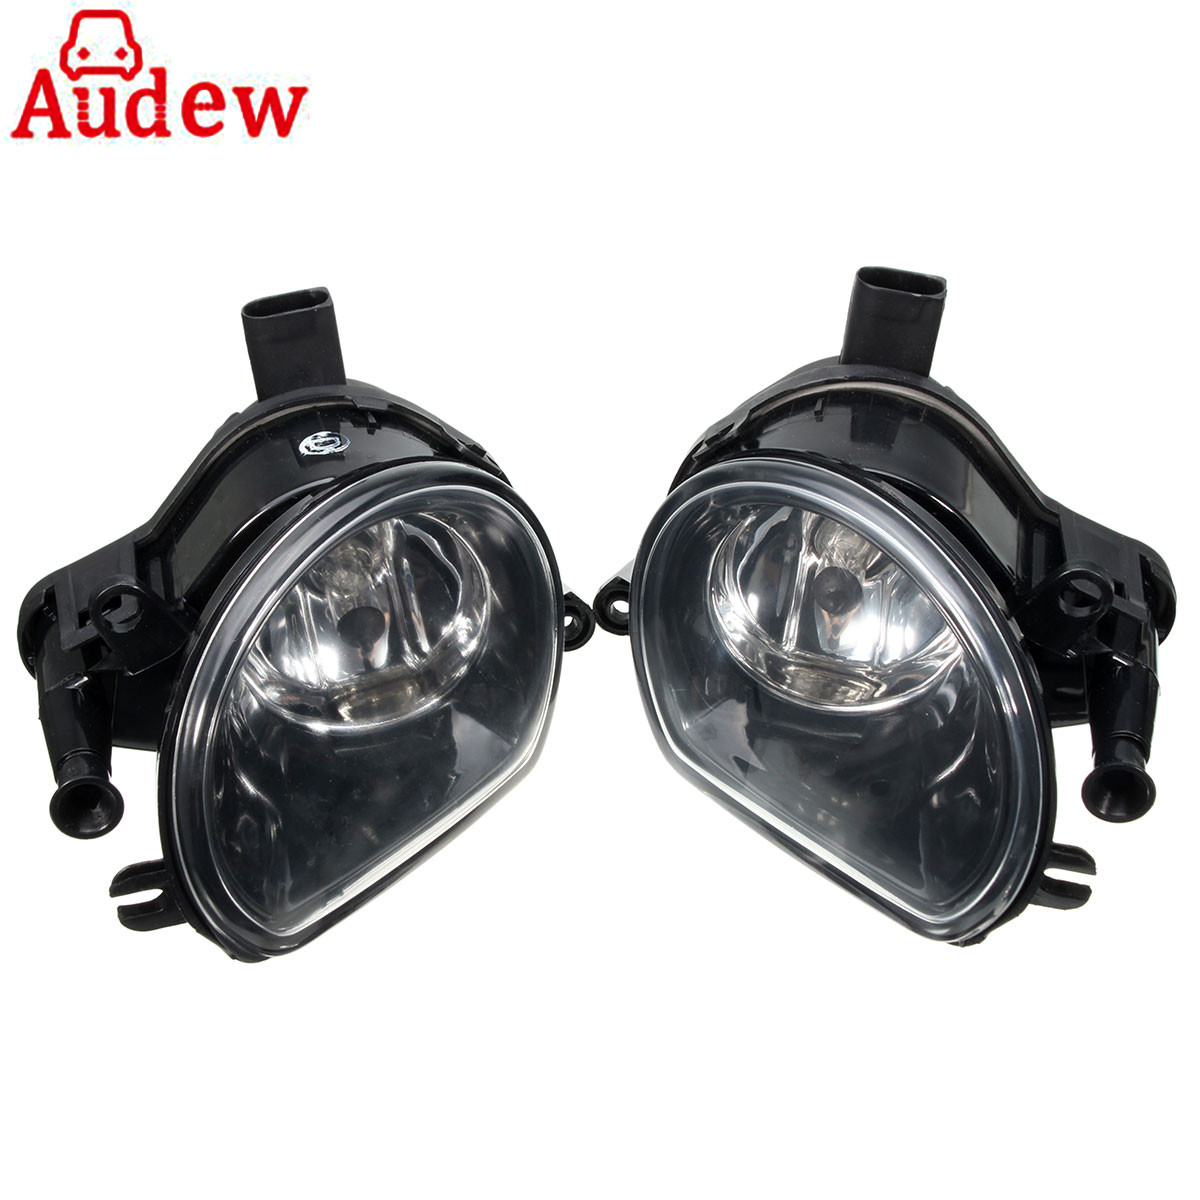 Pair Front Bumper Halogen Clean Fog Lamps Foglights For Audi Q7 07-09/A3 04-08 8P0941699A<br>